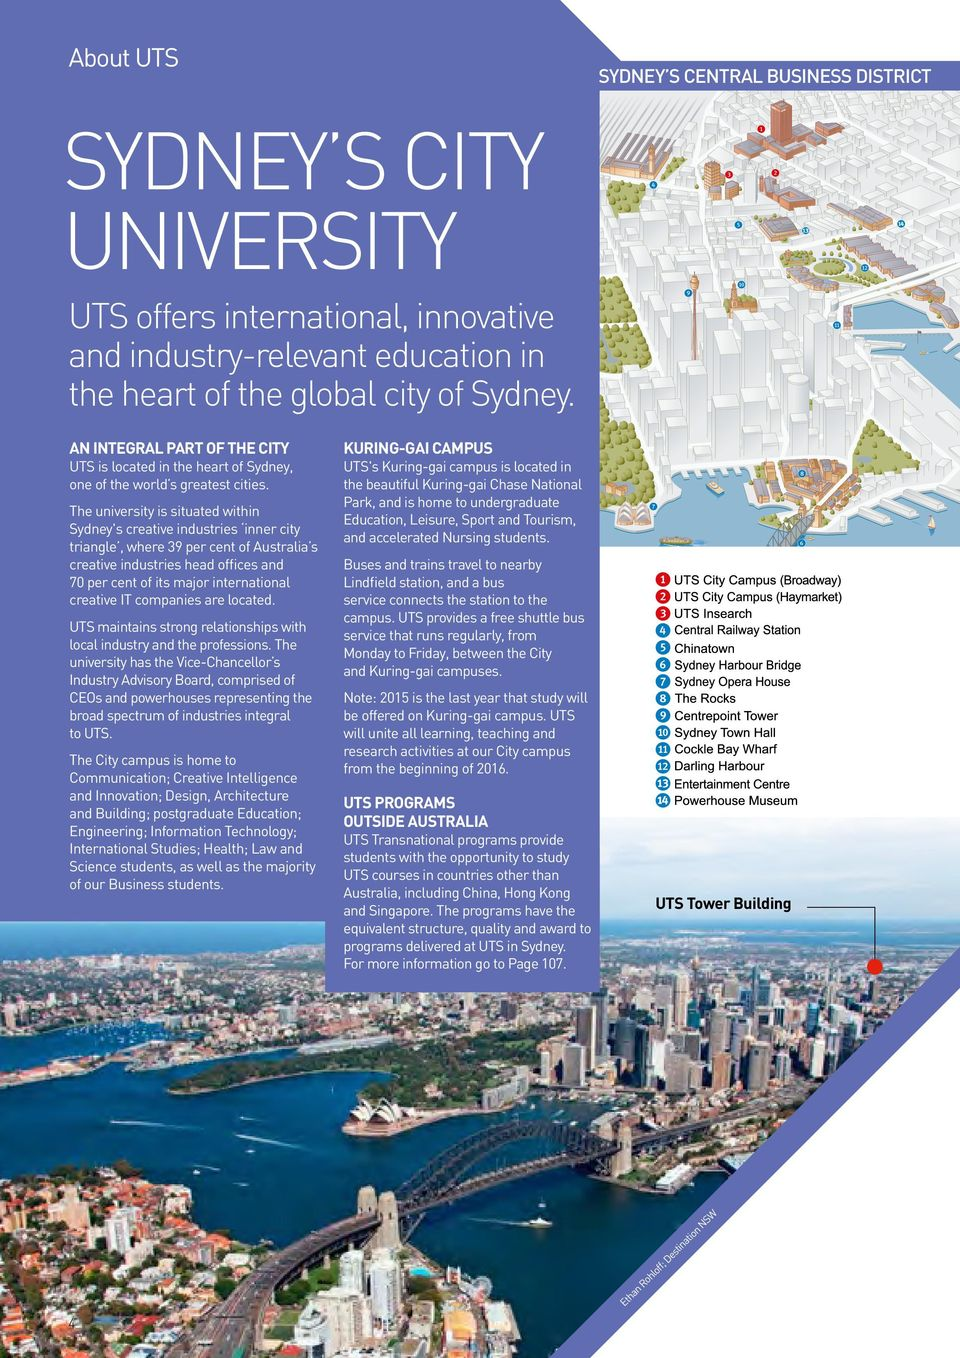 The university is situated within Sydney's creative industries inner city triangle, where 39 per cent of Australia s creative industries head offices and 70 per cent of its major international